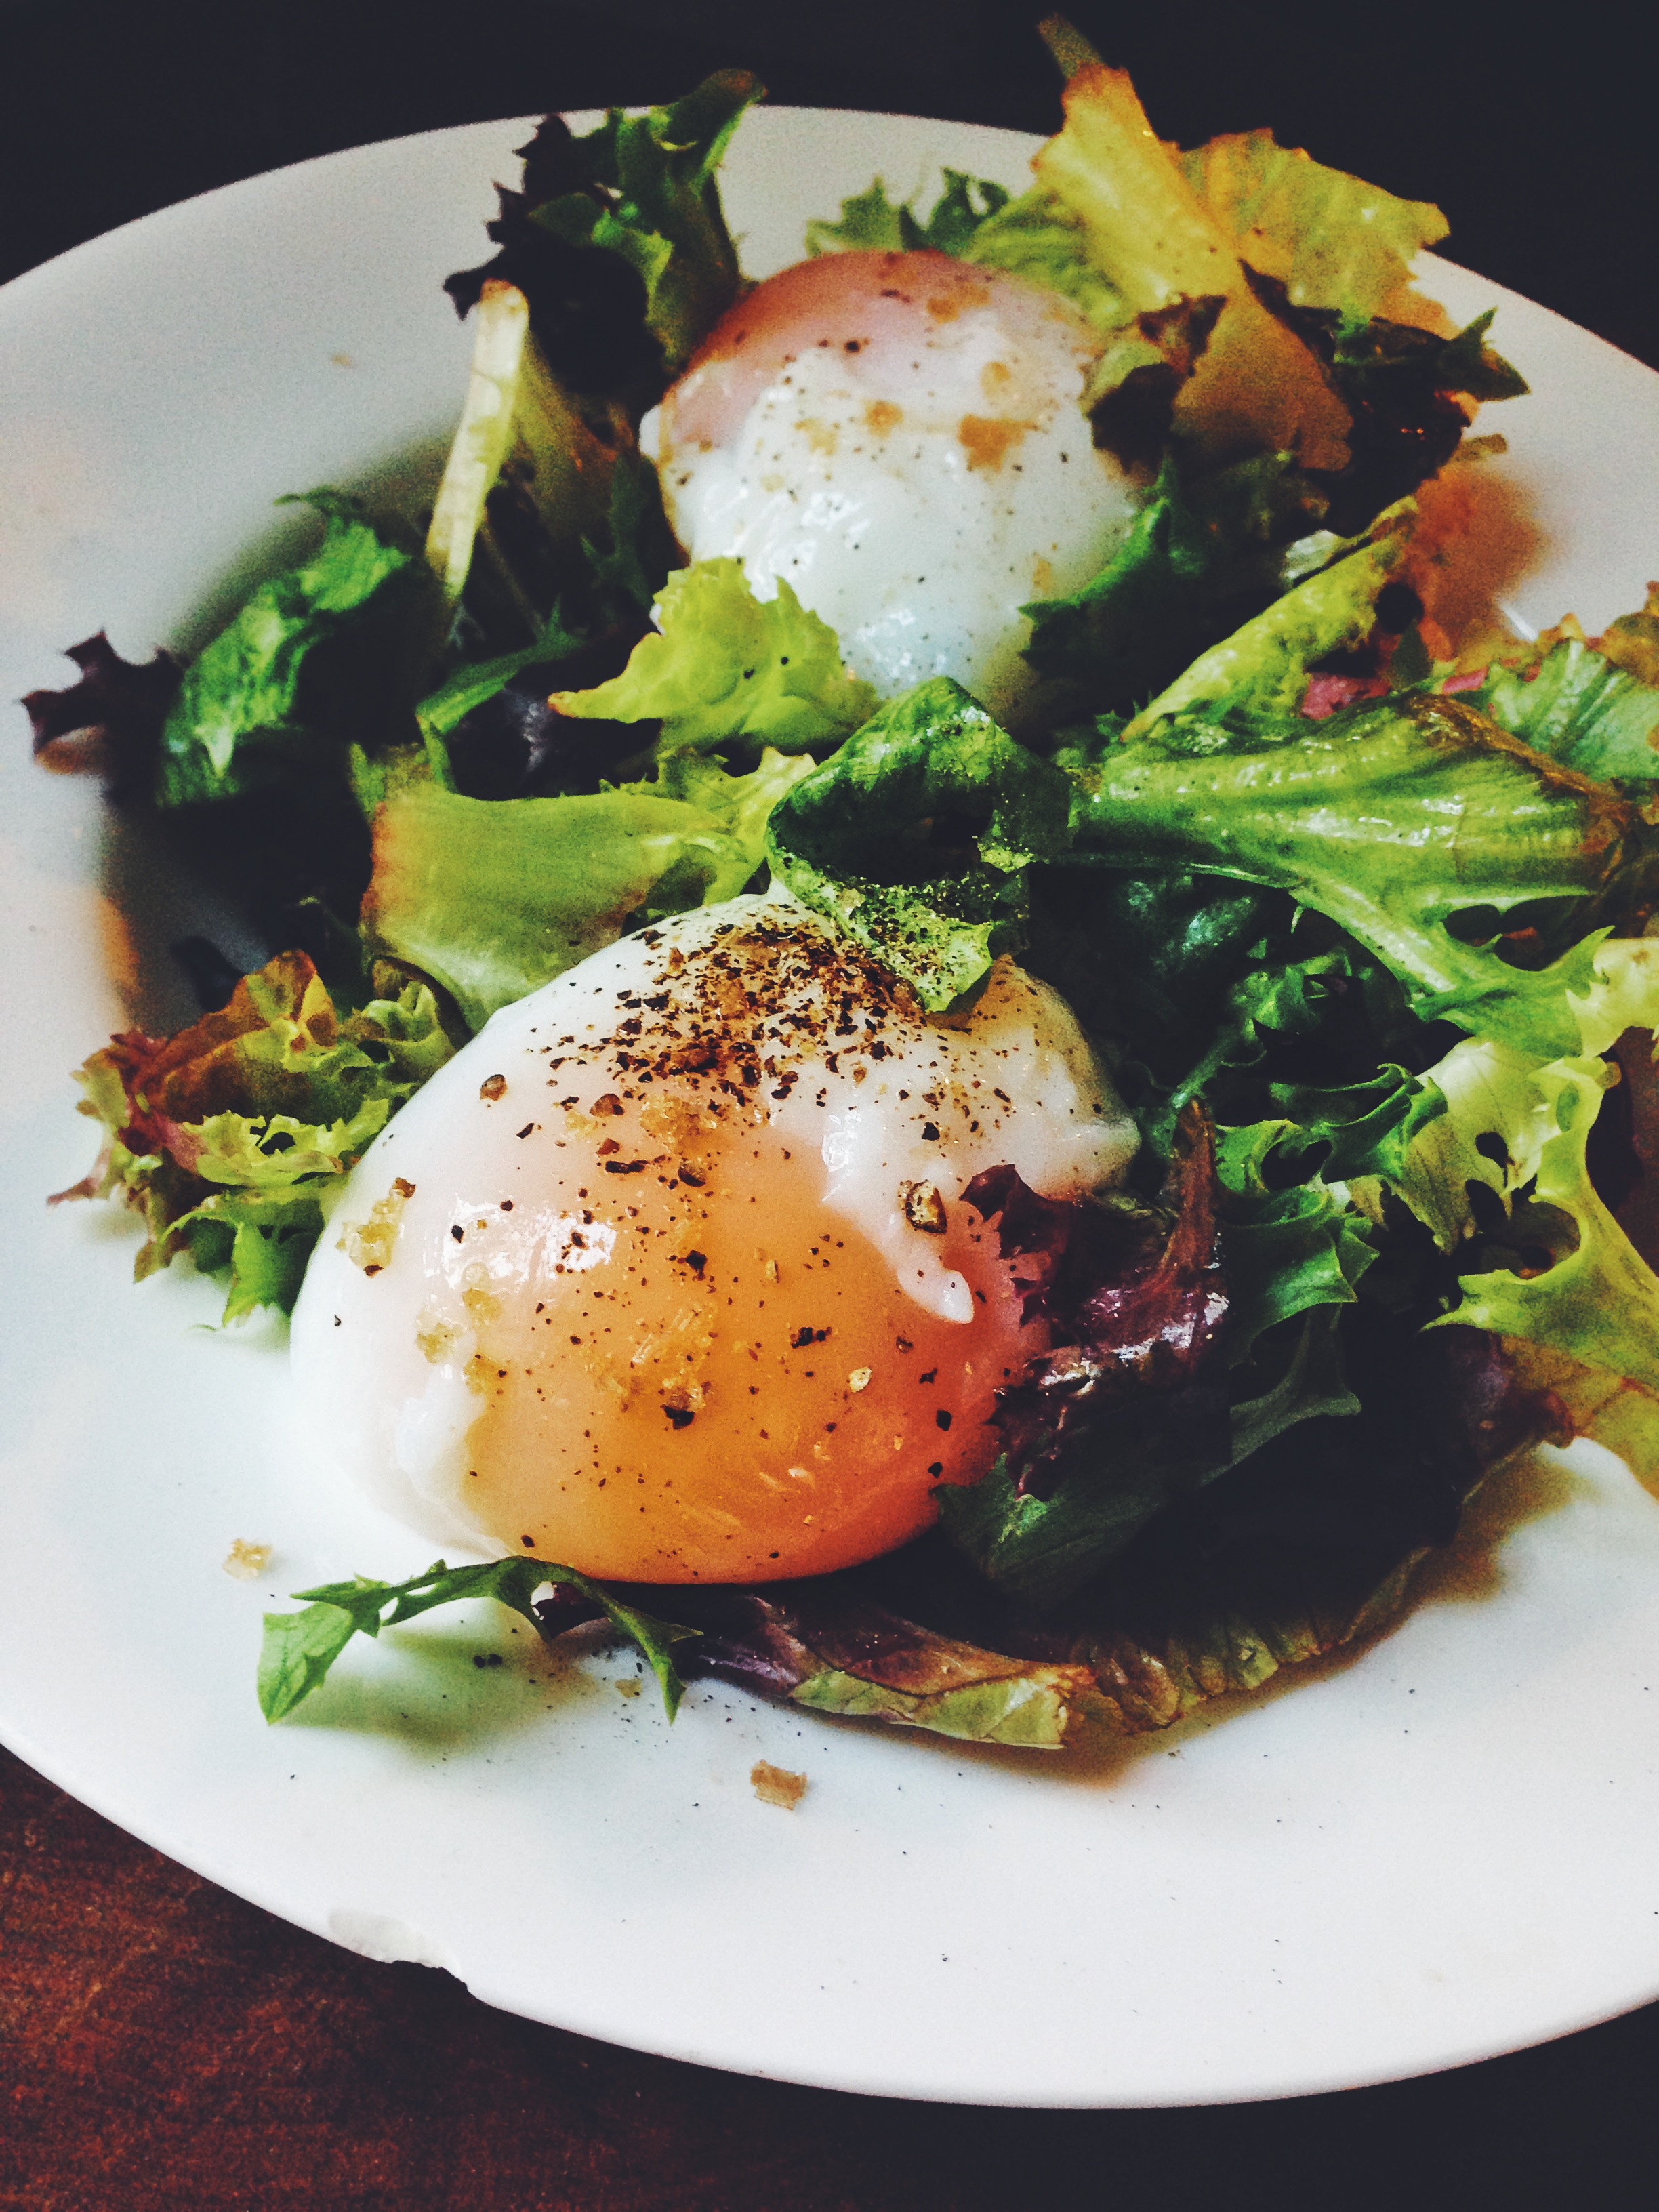 The most perfect duck egg EVERY time